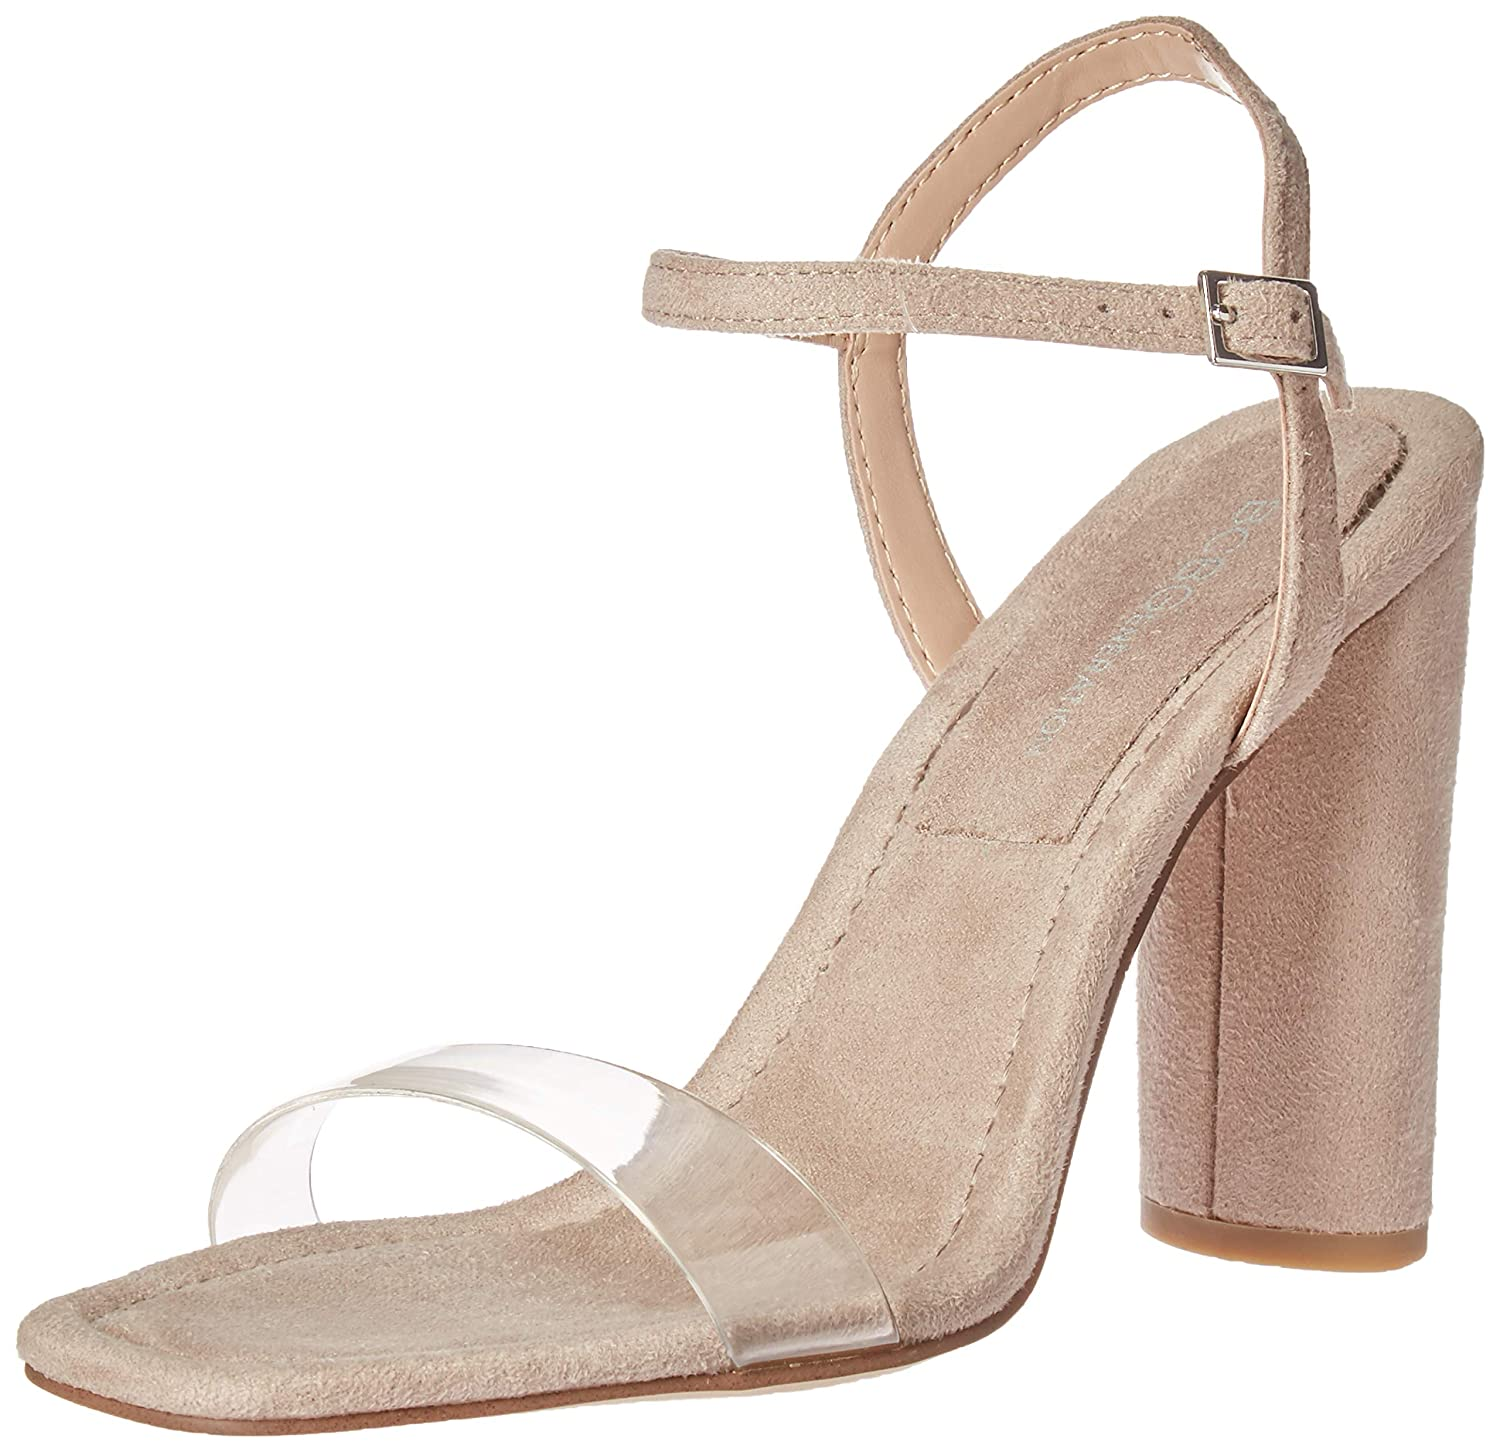 New Taupe Clear BCBGeneration Womens Ilsie Dress Sandal Pump